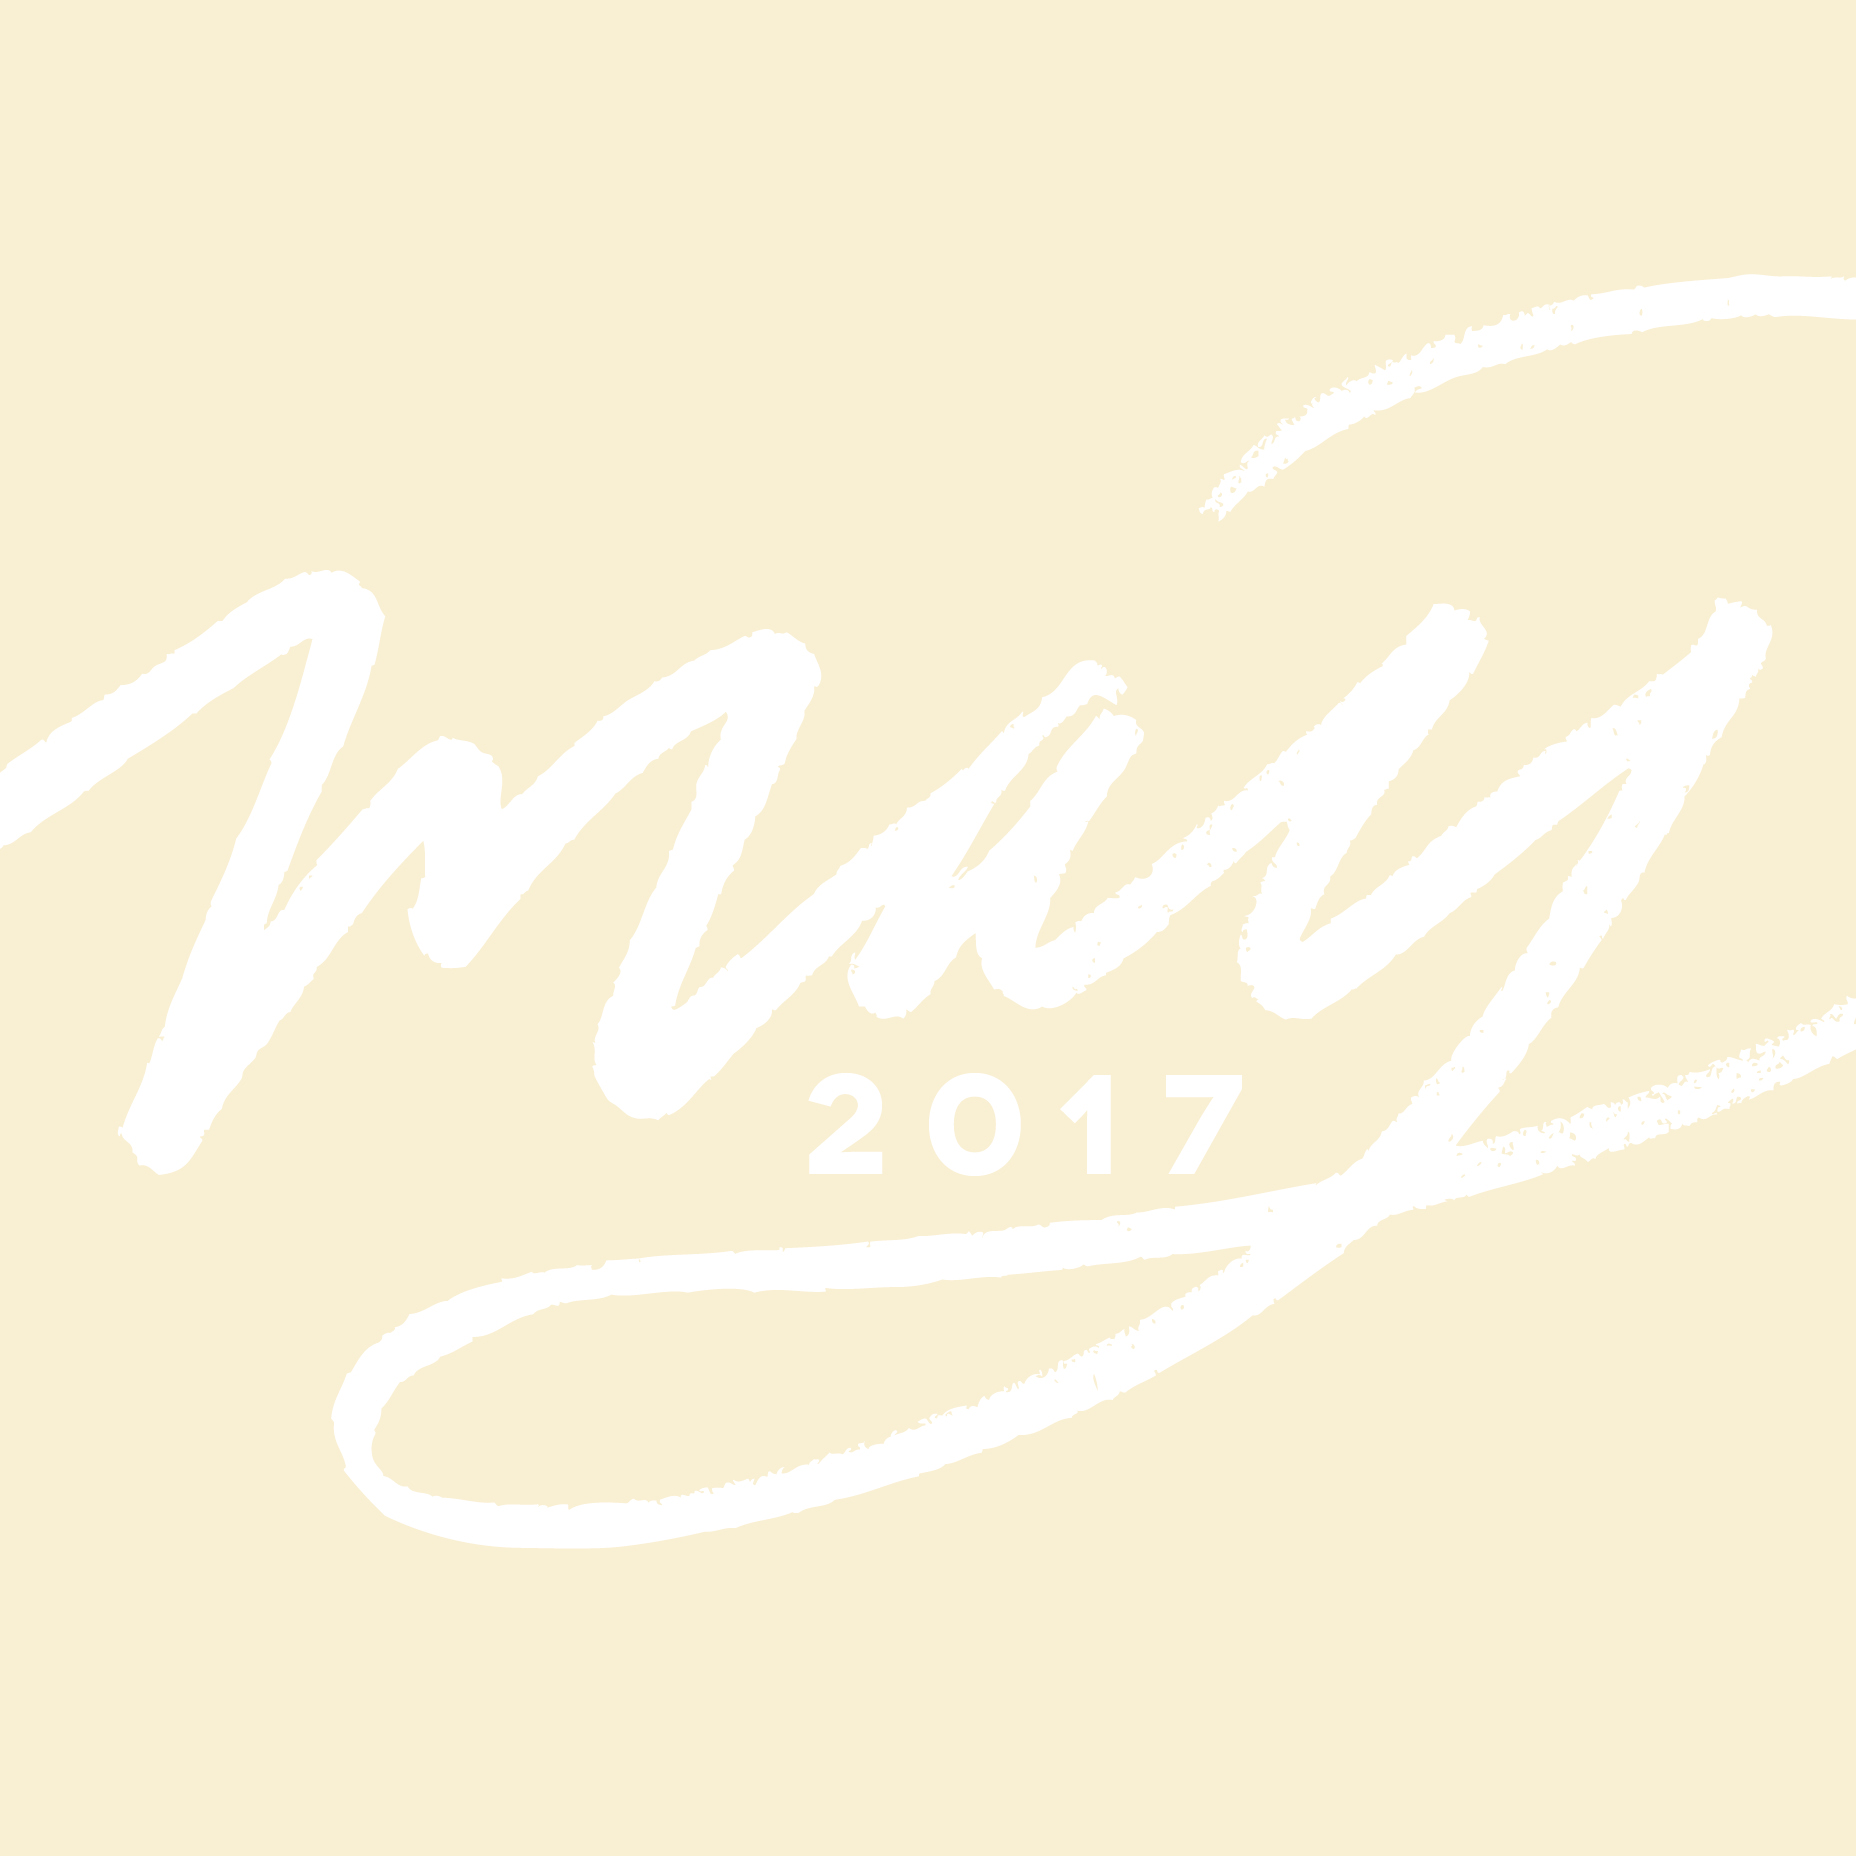 MAY 2017 INSTAGRAM DOWNLOAD May Instagram Monthly Divider